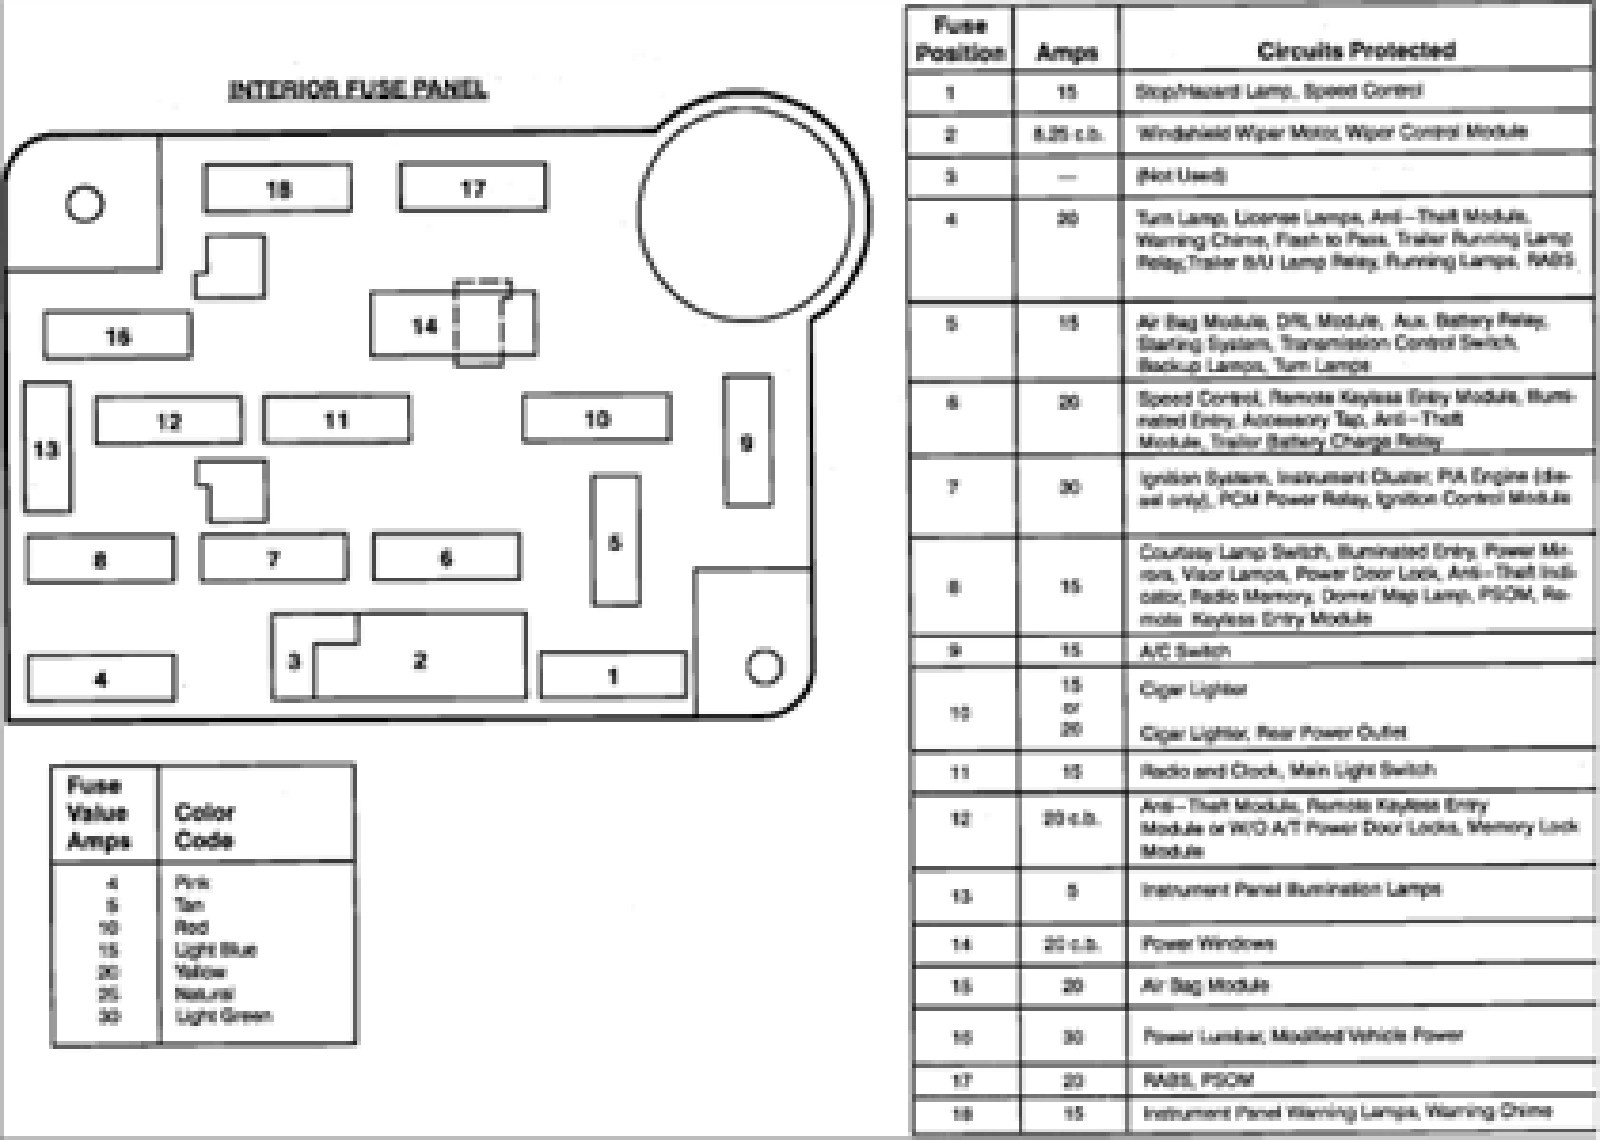 hight resolution of 1996 ford van fuse diagram wiring diagrams scematic 2010 ford explorer fuse panel 1996 ford van